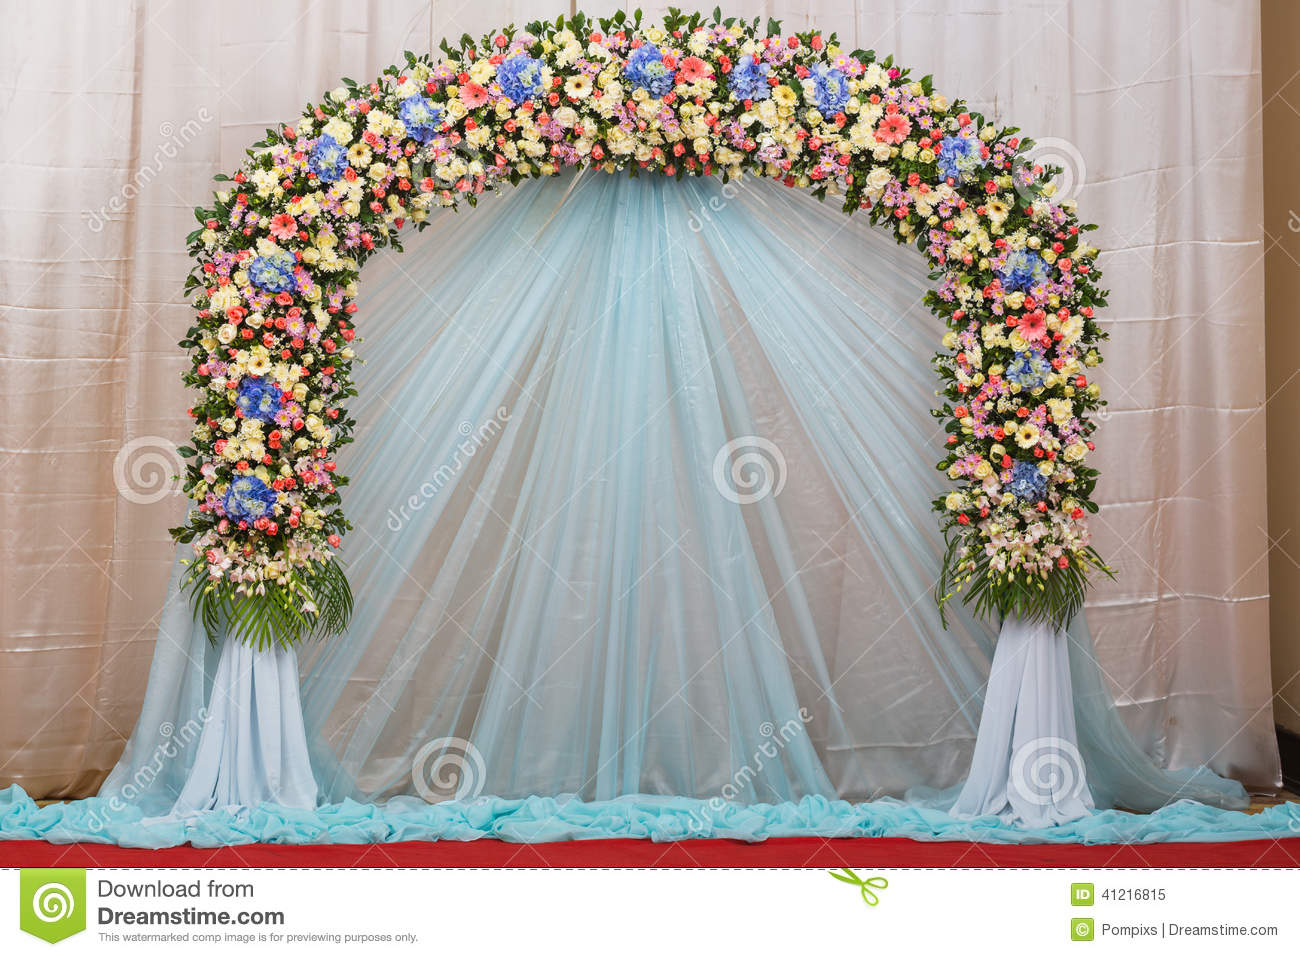 Background of beautiful flower wedding decorate stock for Back ground decoration